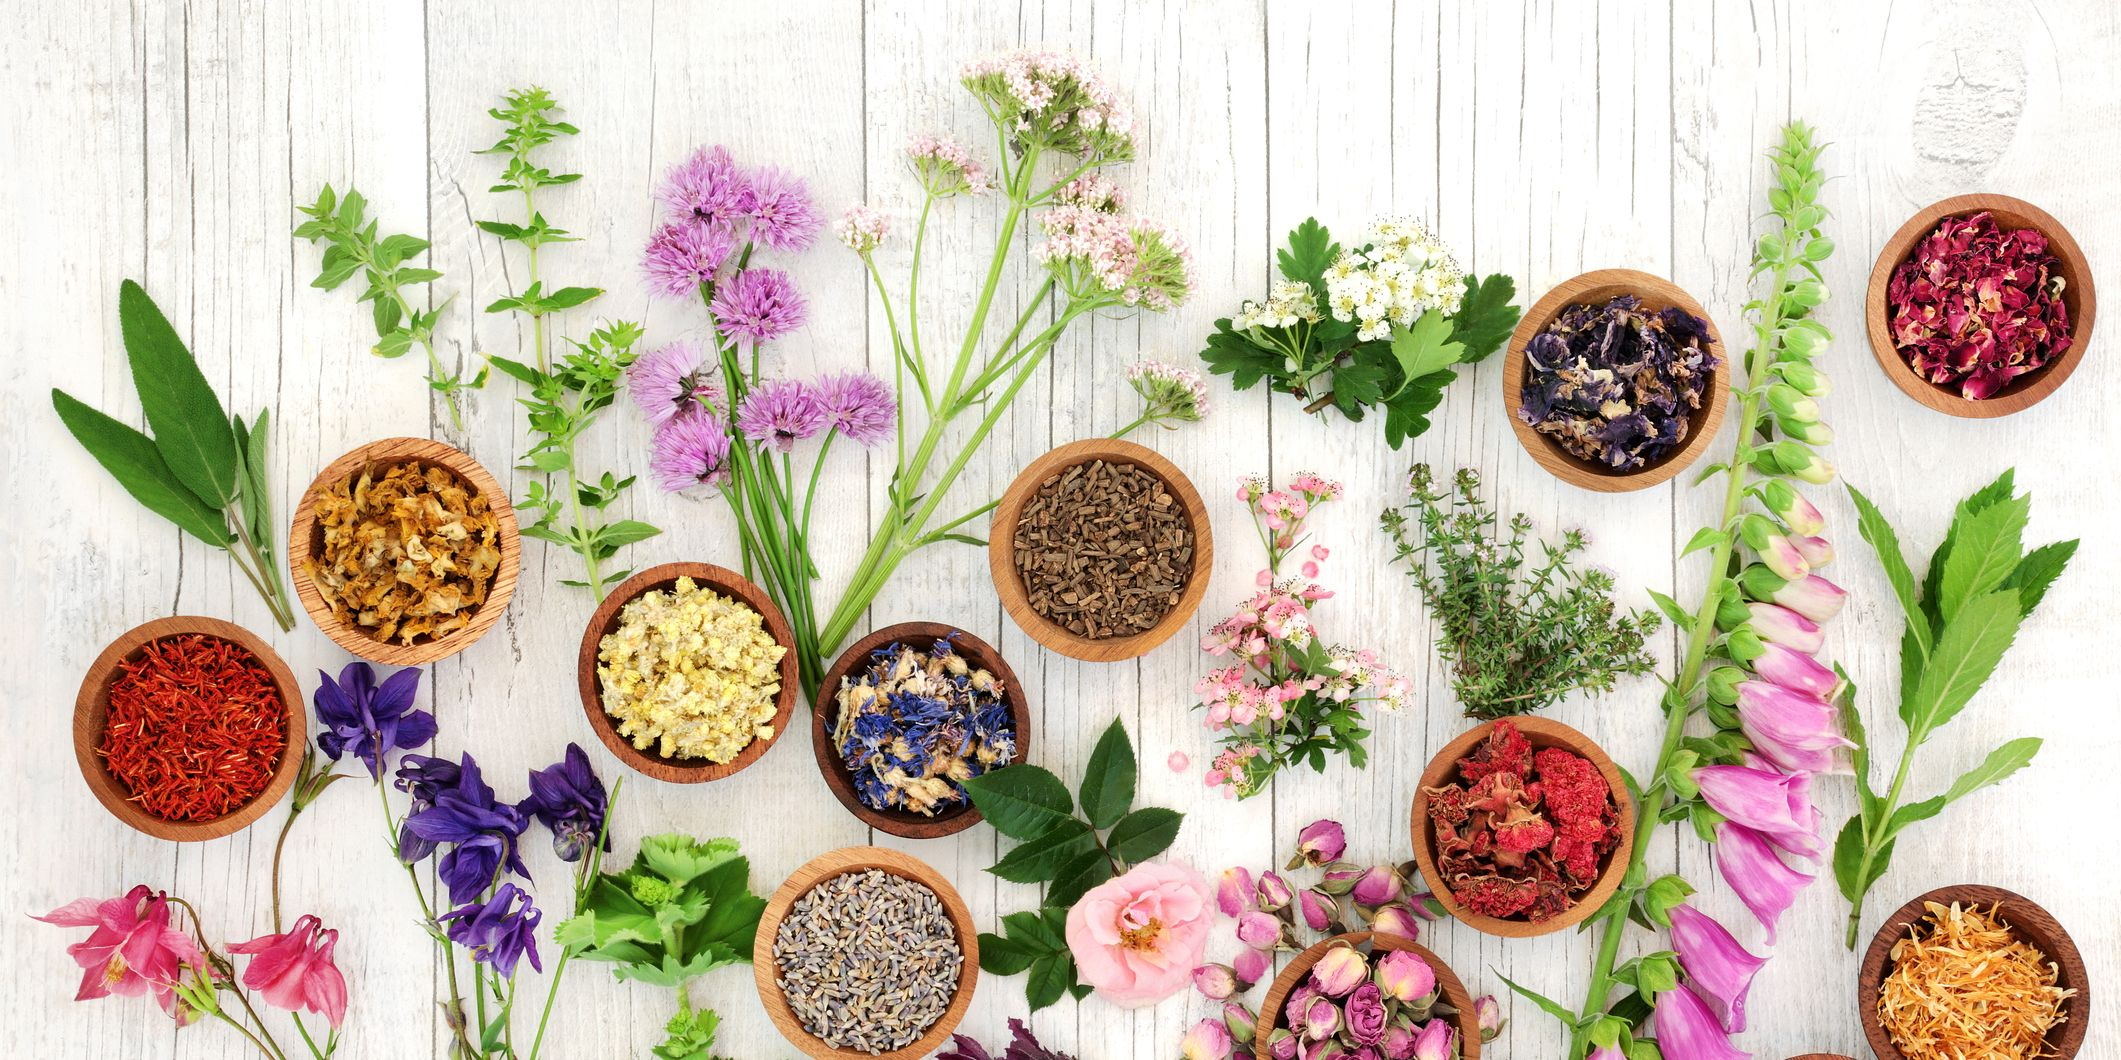 Herbs and Flowers for Herbal Medicine